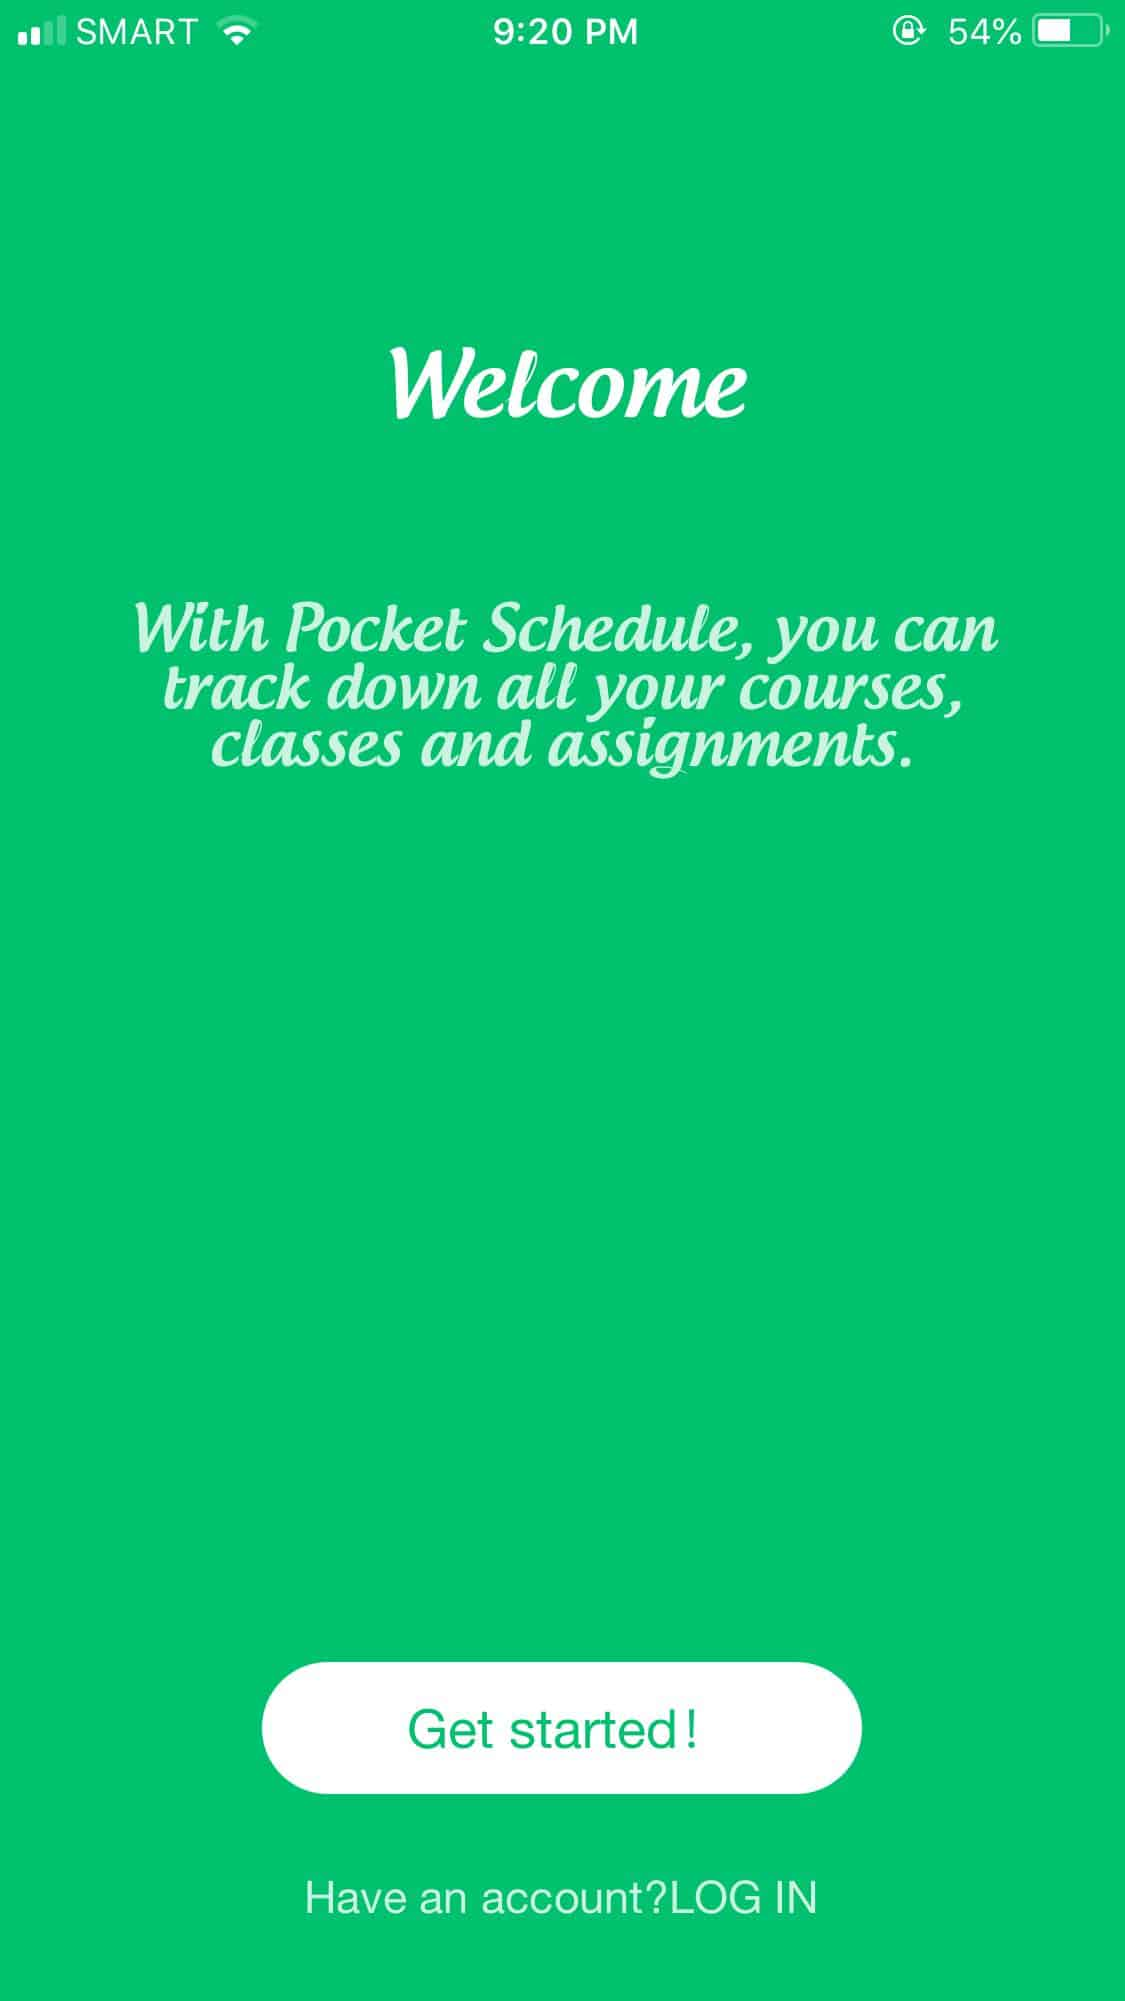 Onboarding on iOS by Pocket Schedule from UIGarage